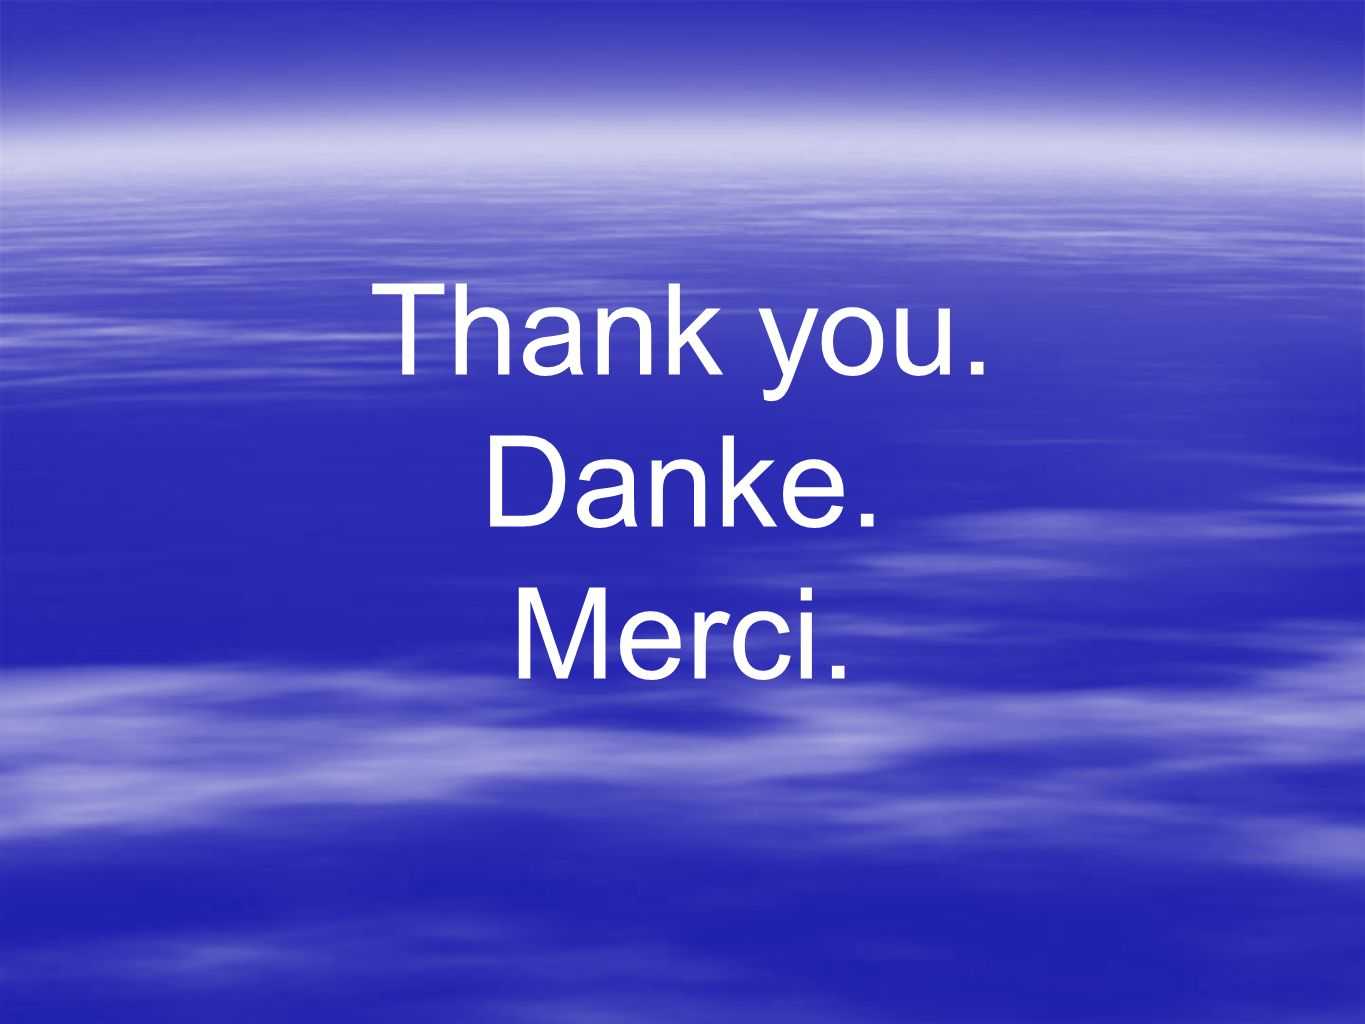 Thank you. Danke. Merci.